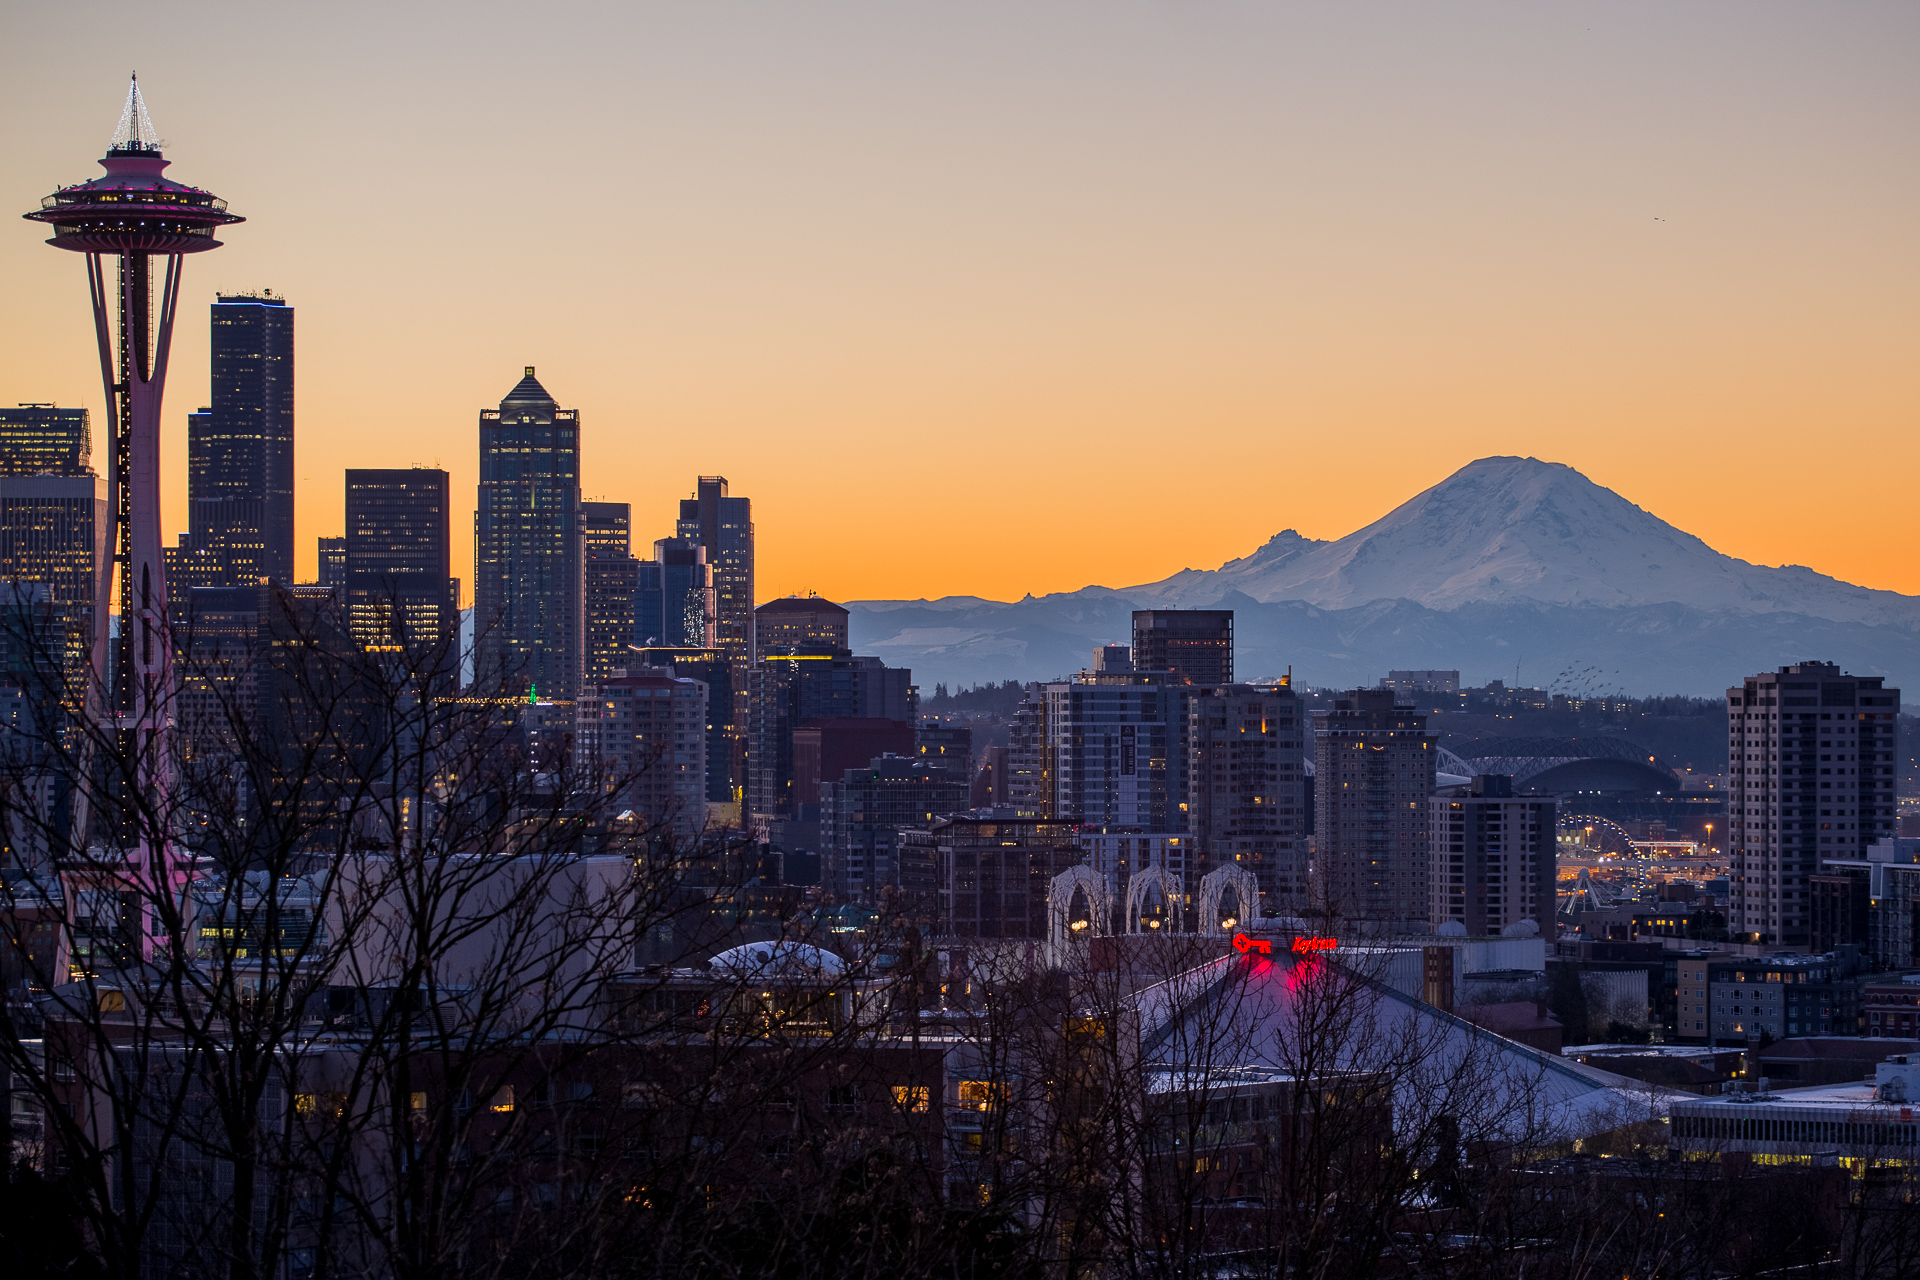 The last sunrise of 2015 over the Space Needle and Mt. Rainier